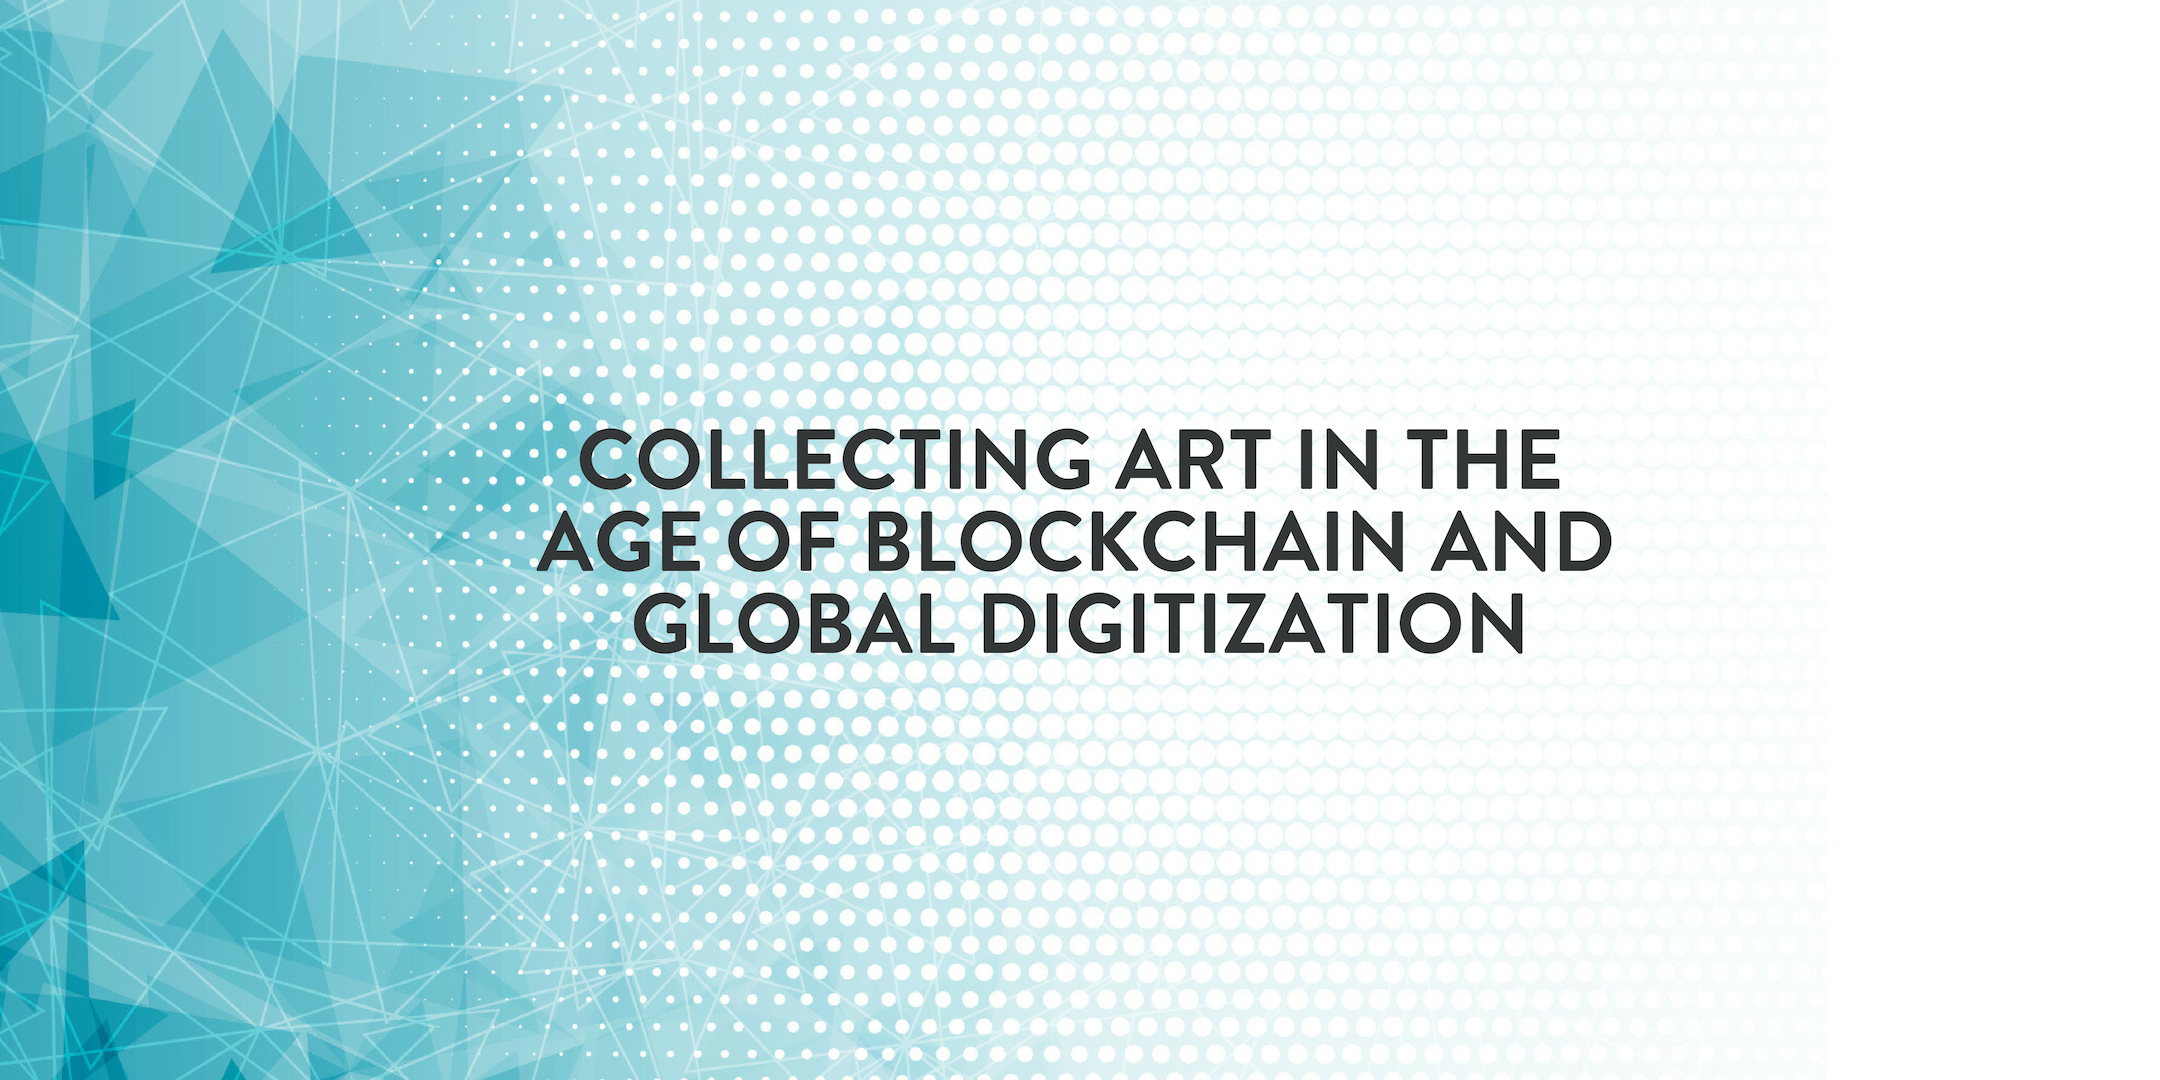 Collecting Art in the Age of Blockchain and Global Digitization